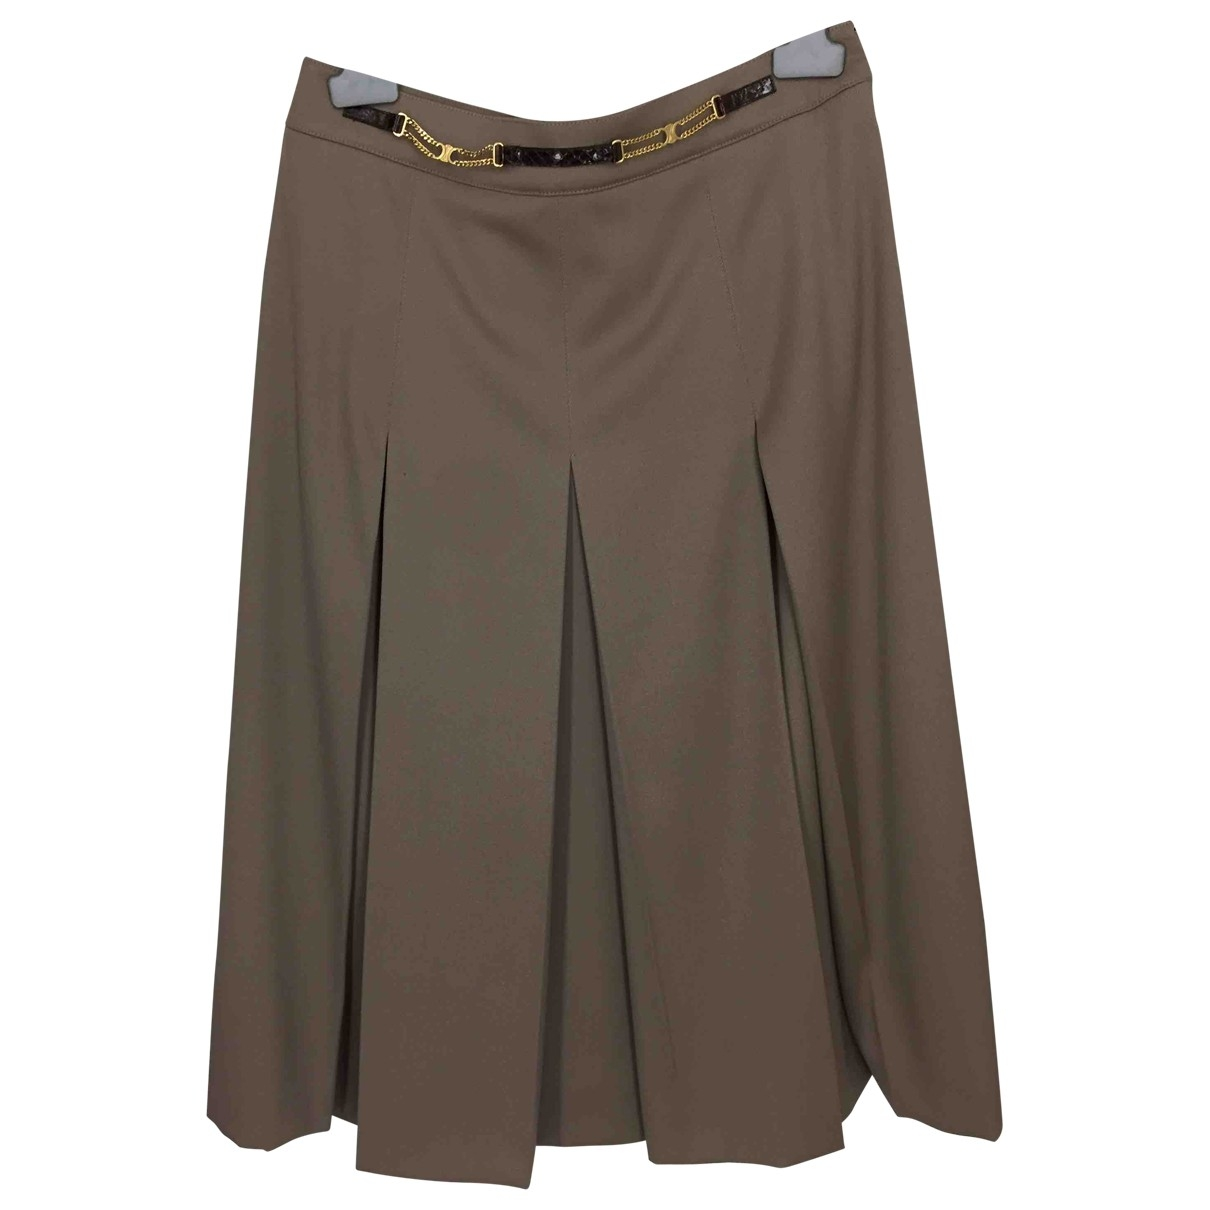 Celine \N Beige Wool skirt for Women 40 FR